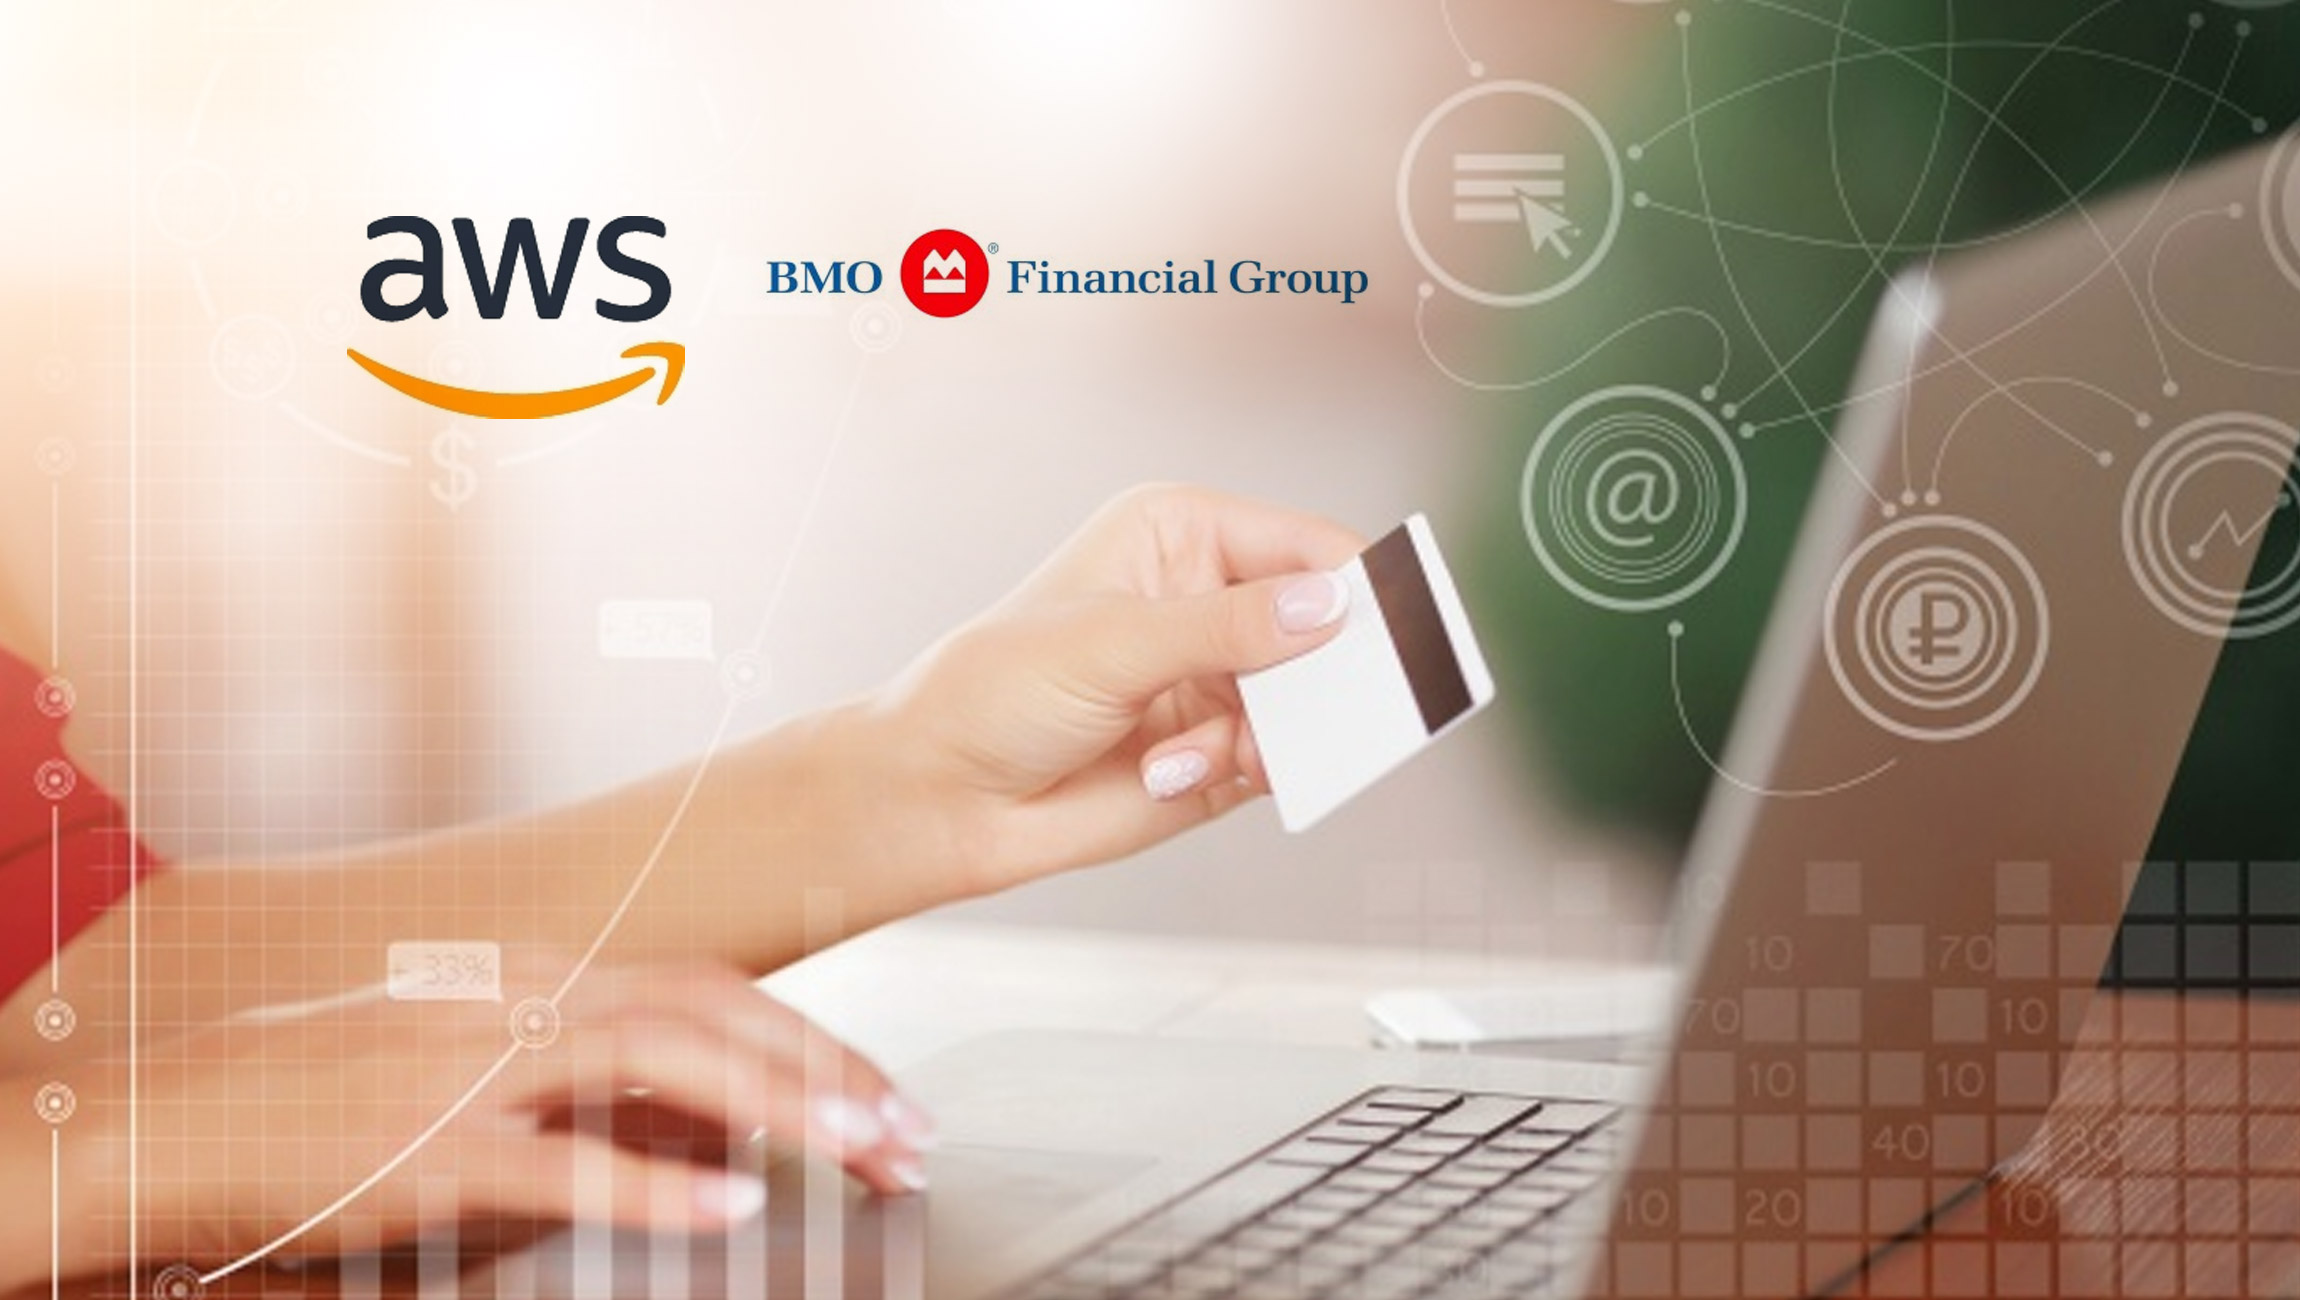 BMO Financial Group Selects AWS As Its Preferred Cloud Provider